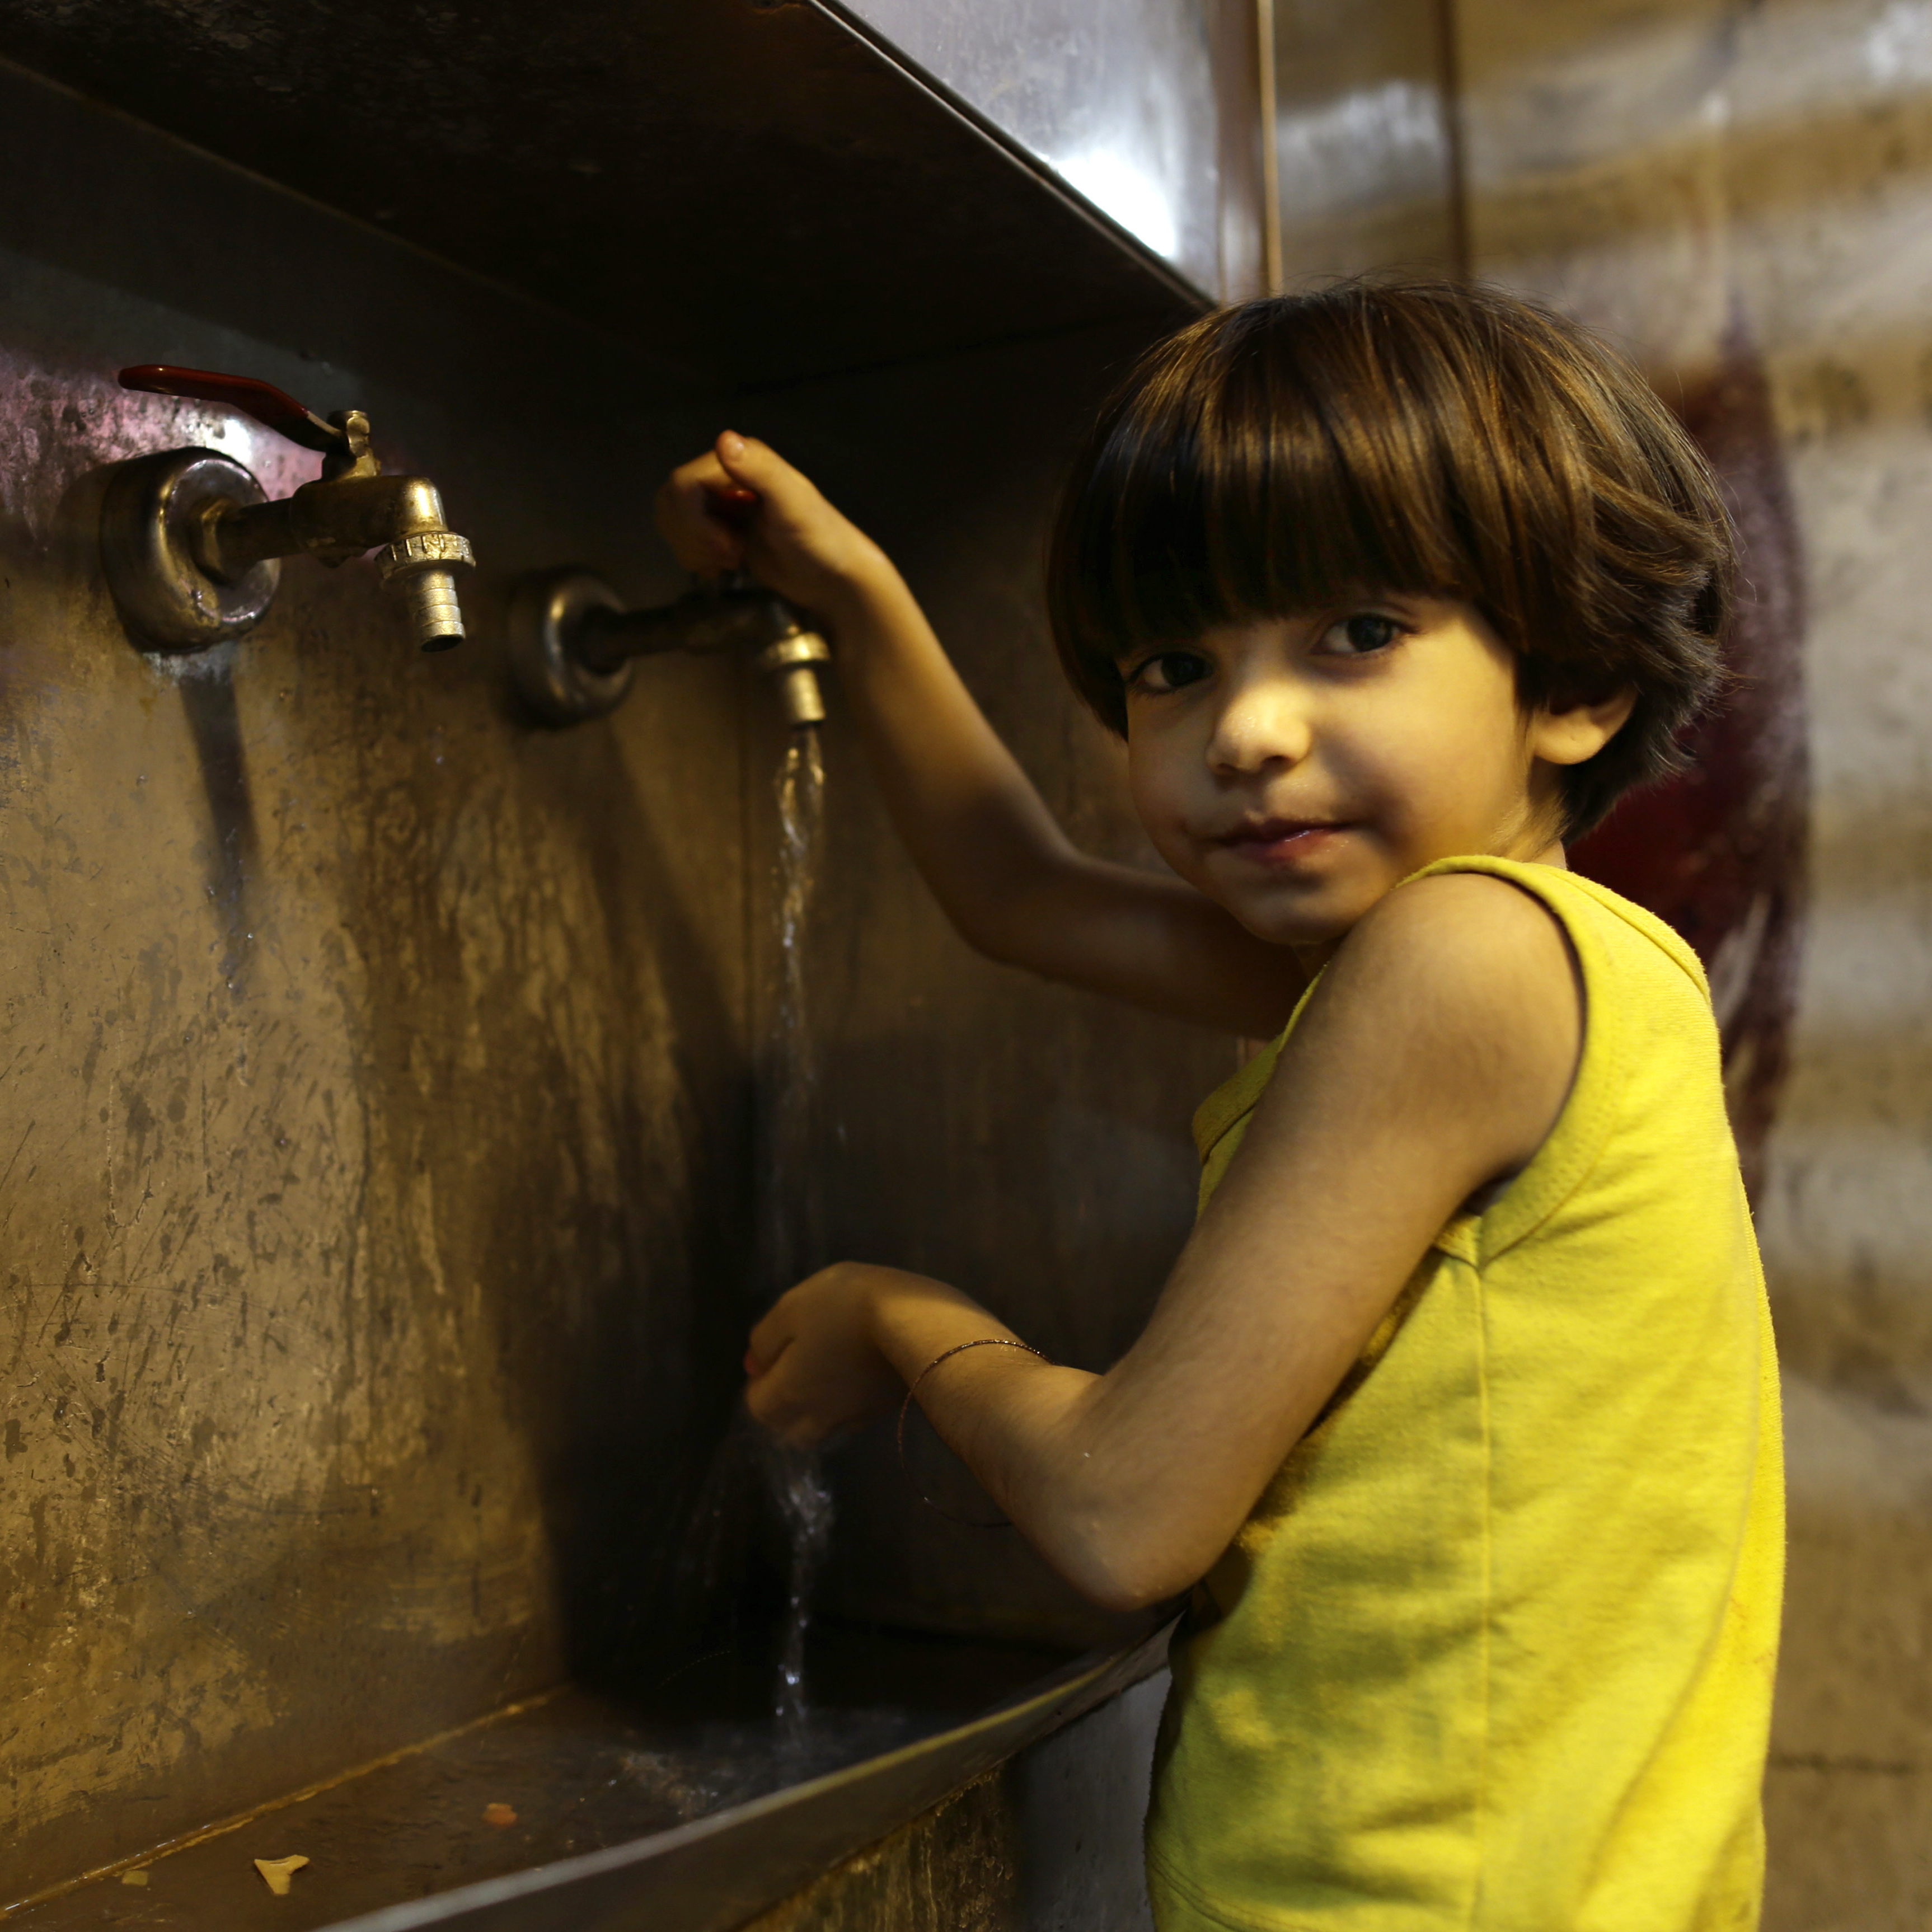 A girl whose family fled their home because of Syria's civil war runs water for drinking in the kitchen of the Kertaj Hotel in Damascus on Aug. 25. Seeking safety, about a dozen families have been living in the hotel for months.